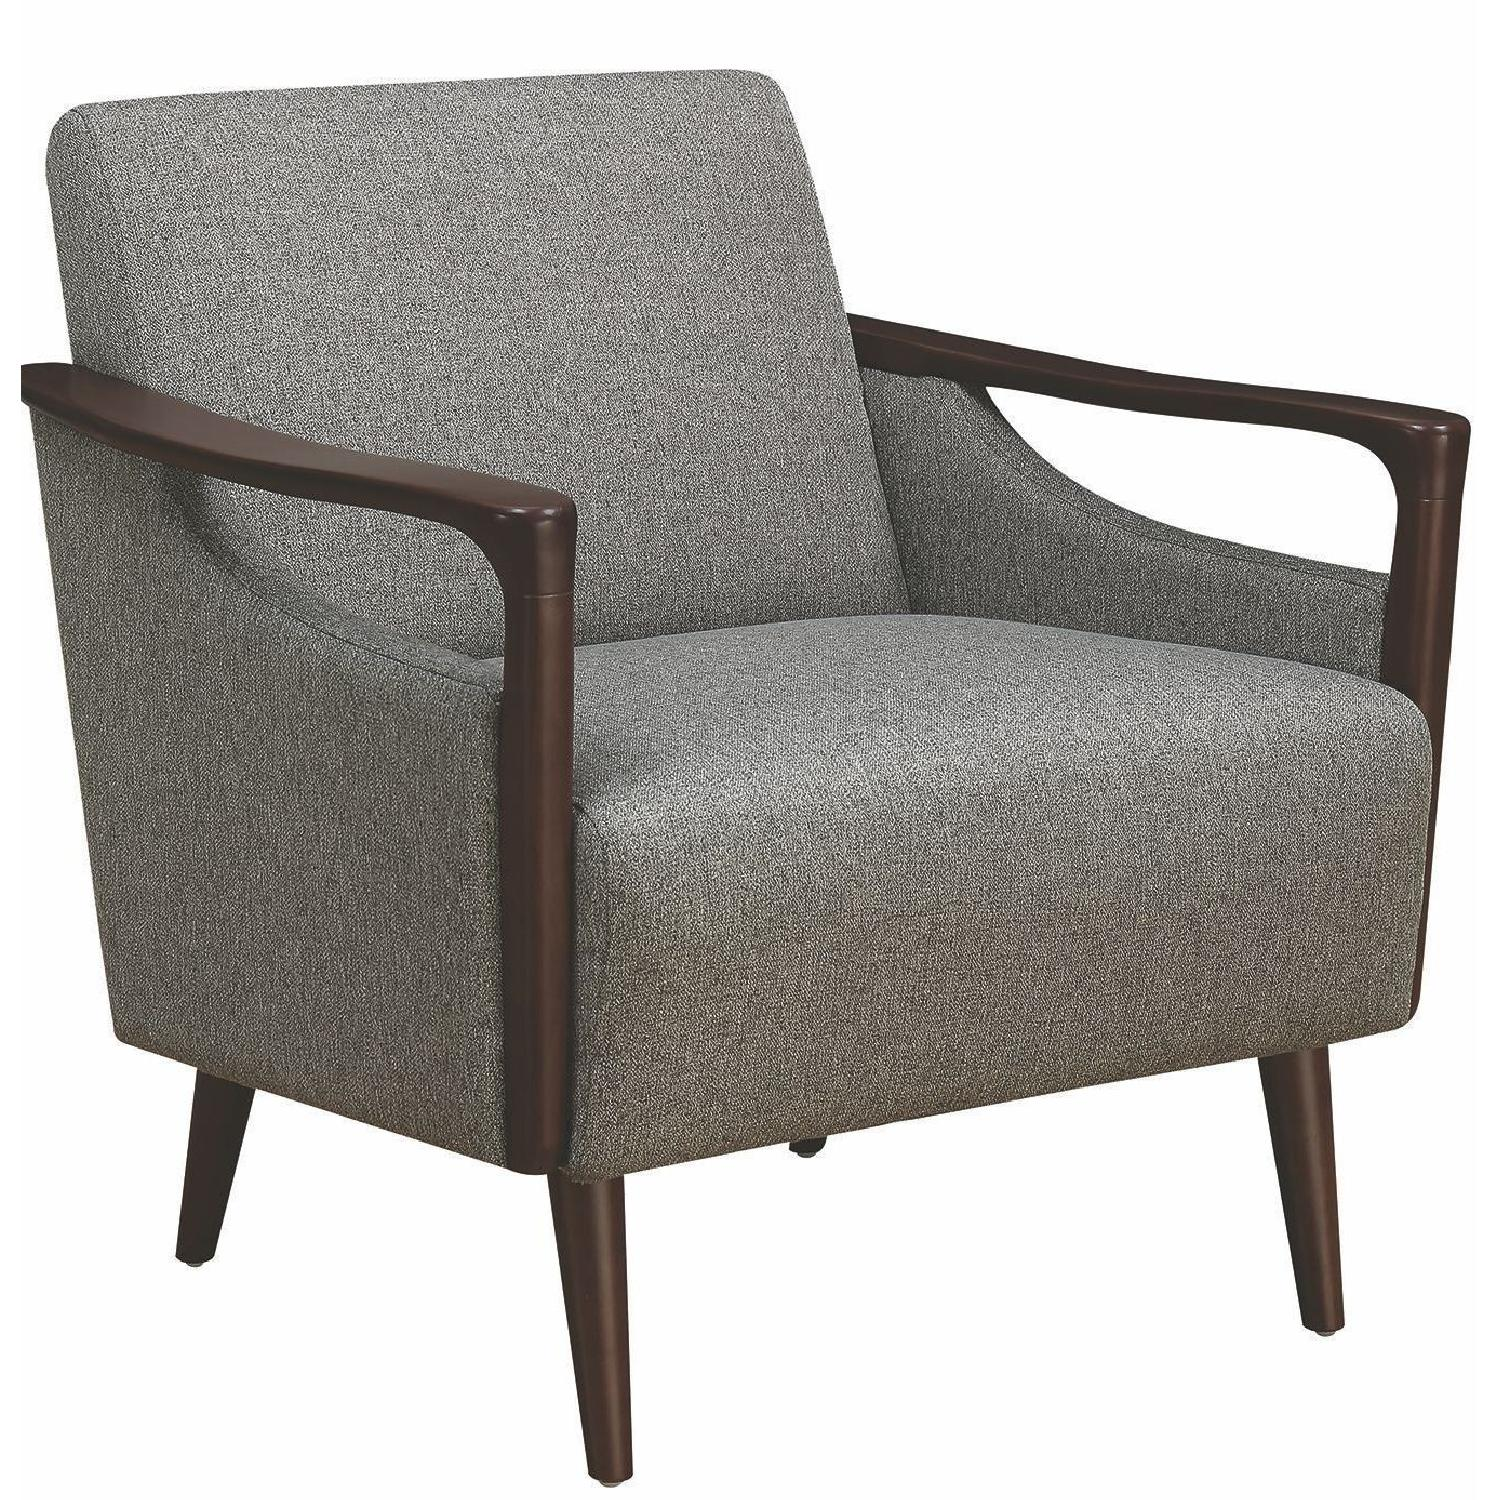 Accent Chairs Modern Mid Century Modern Accent Chair In Grey Fabric W Wood